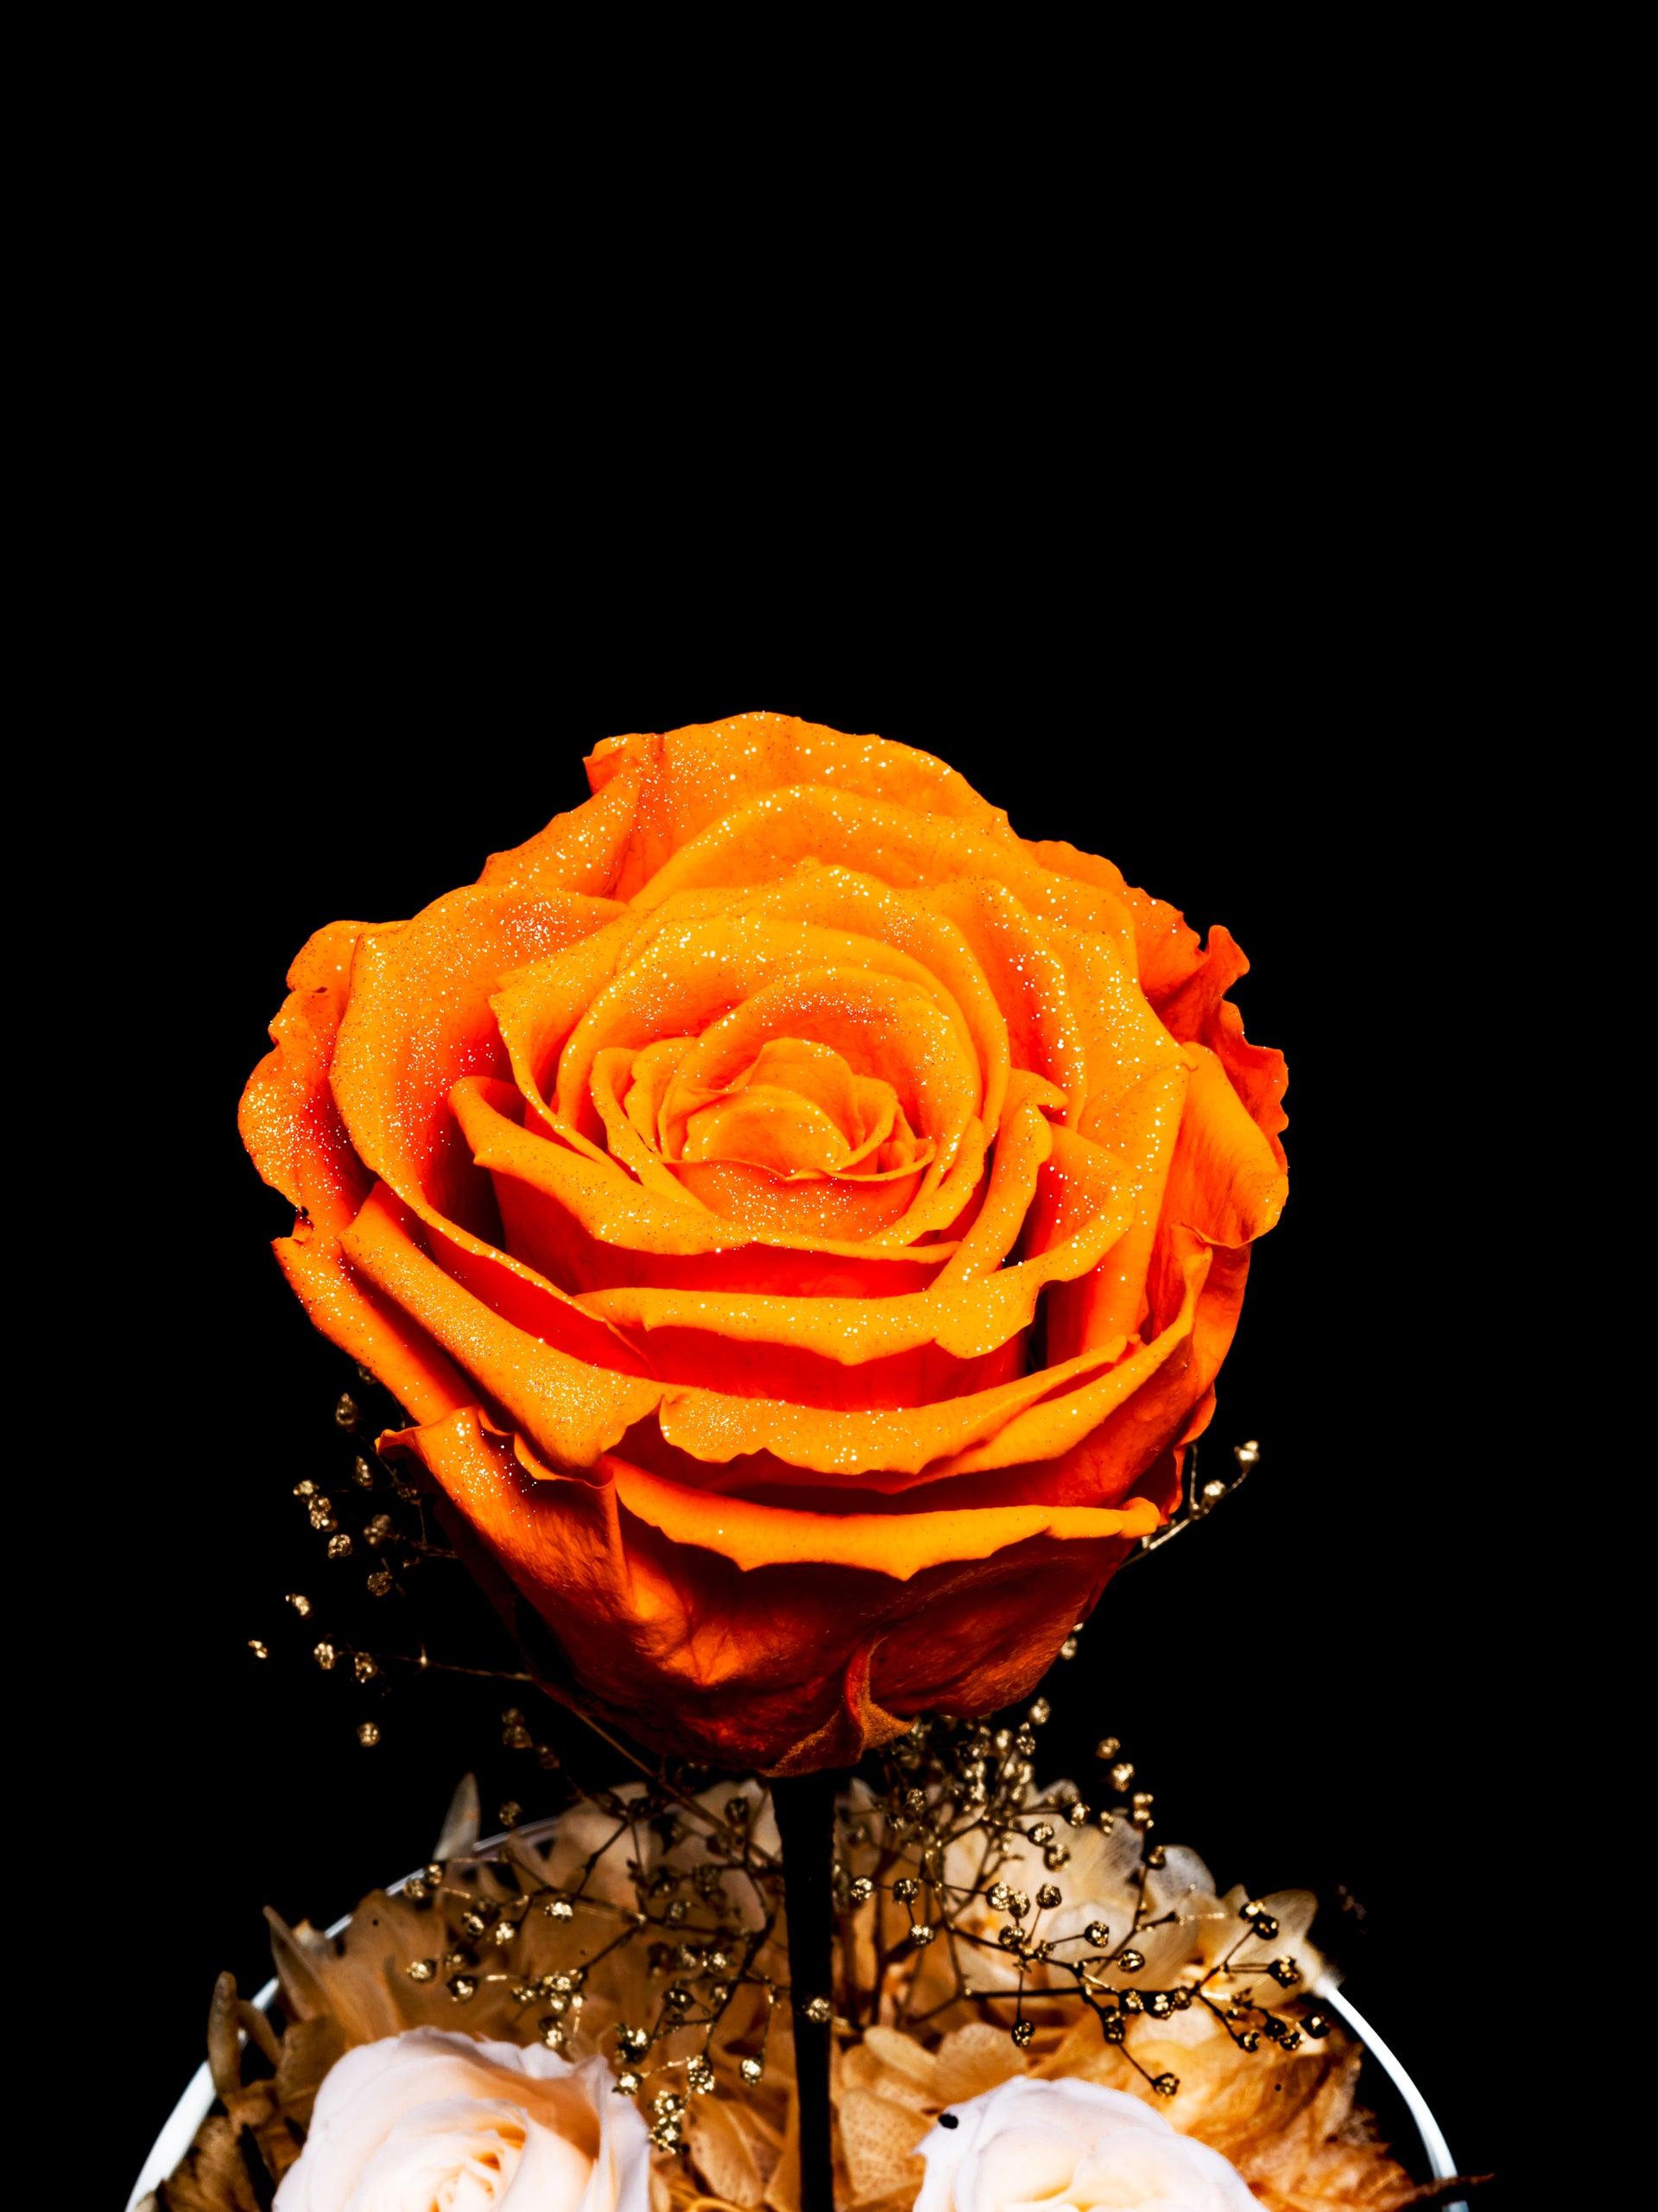 THE LITTLE PRINCE - TANGERINE ORANGE DIAMOND ROSE EDITION